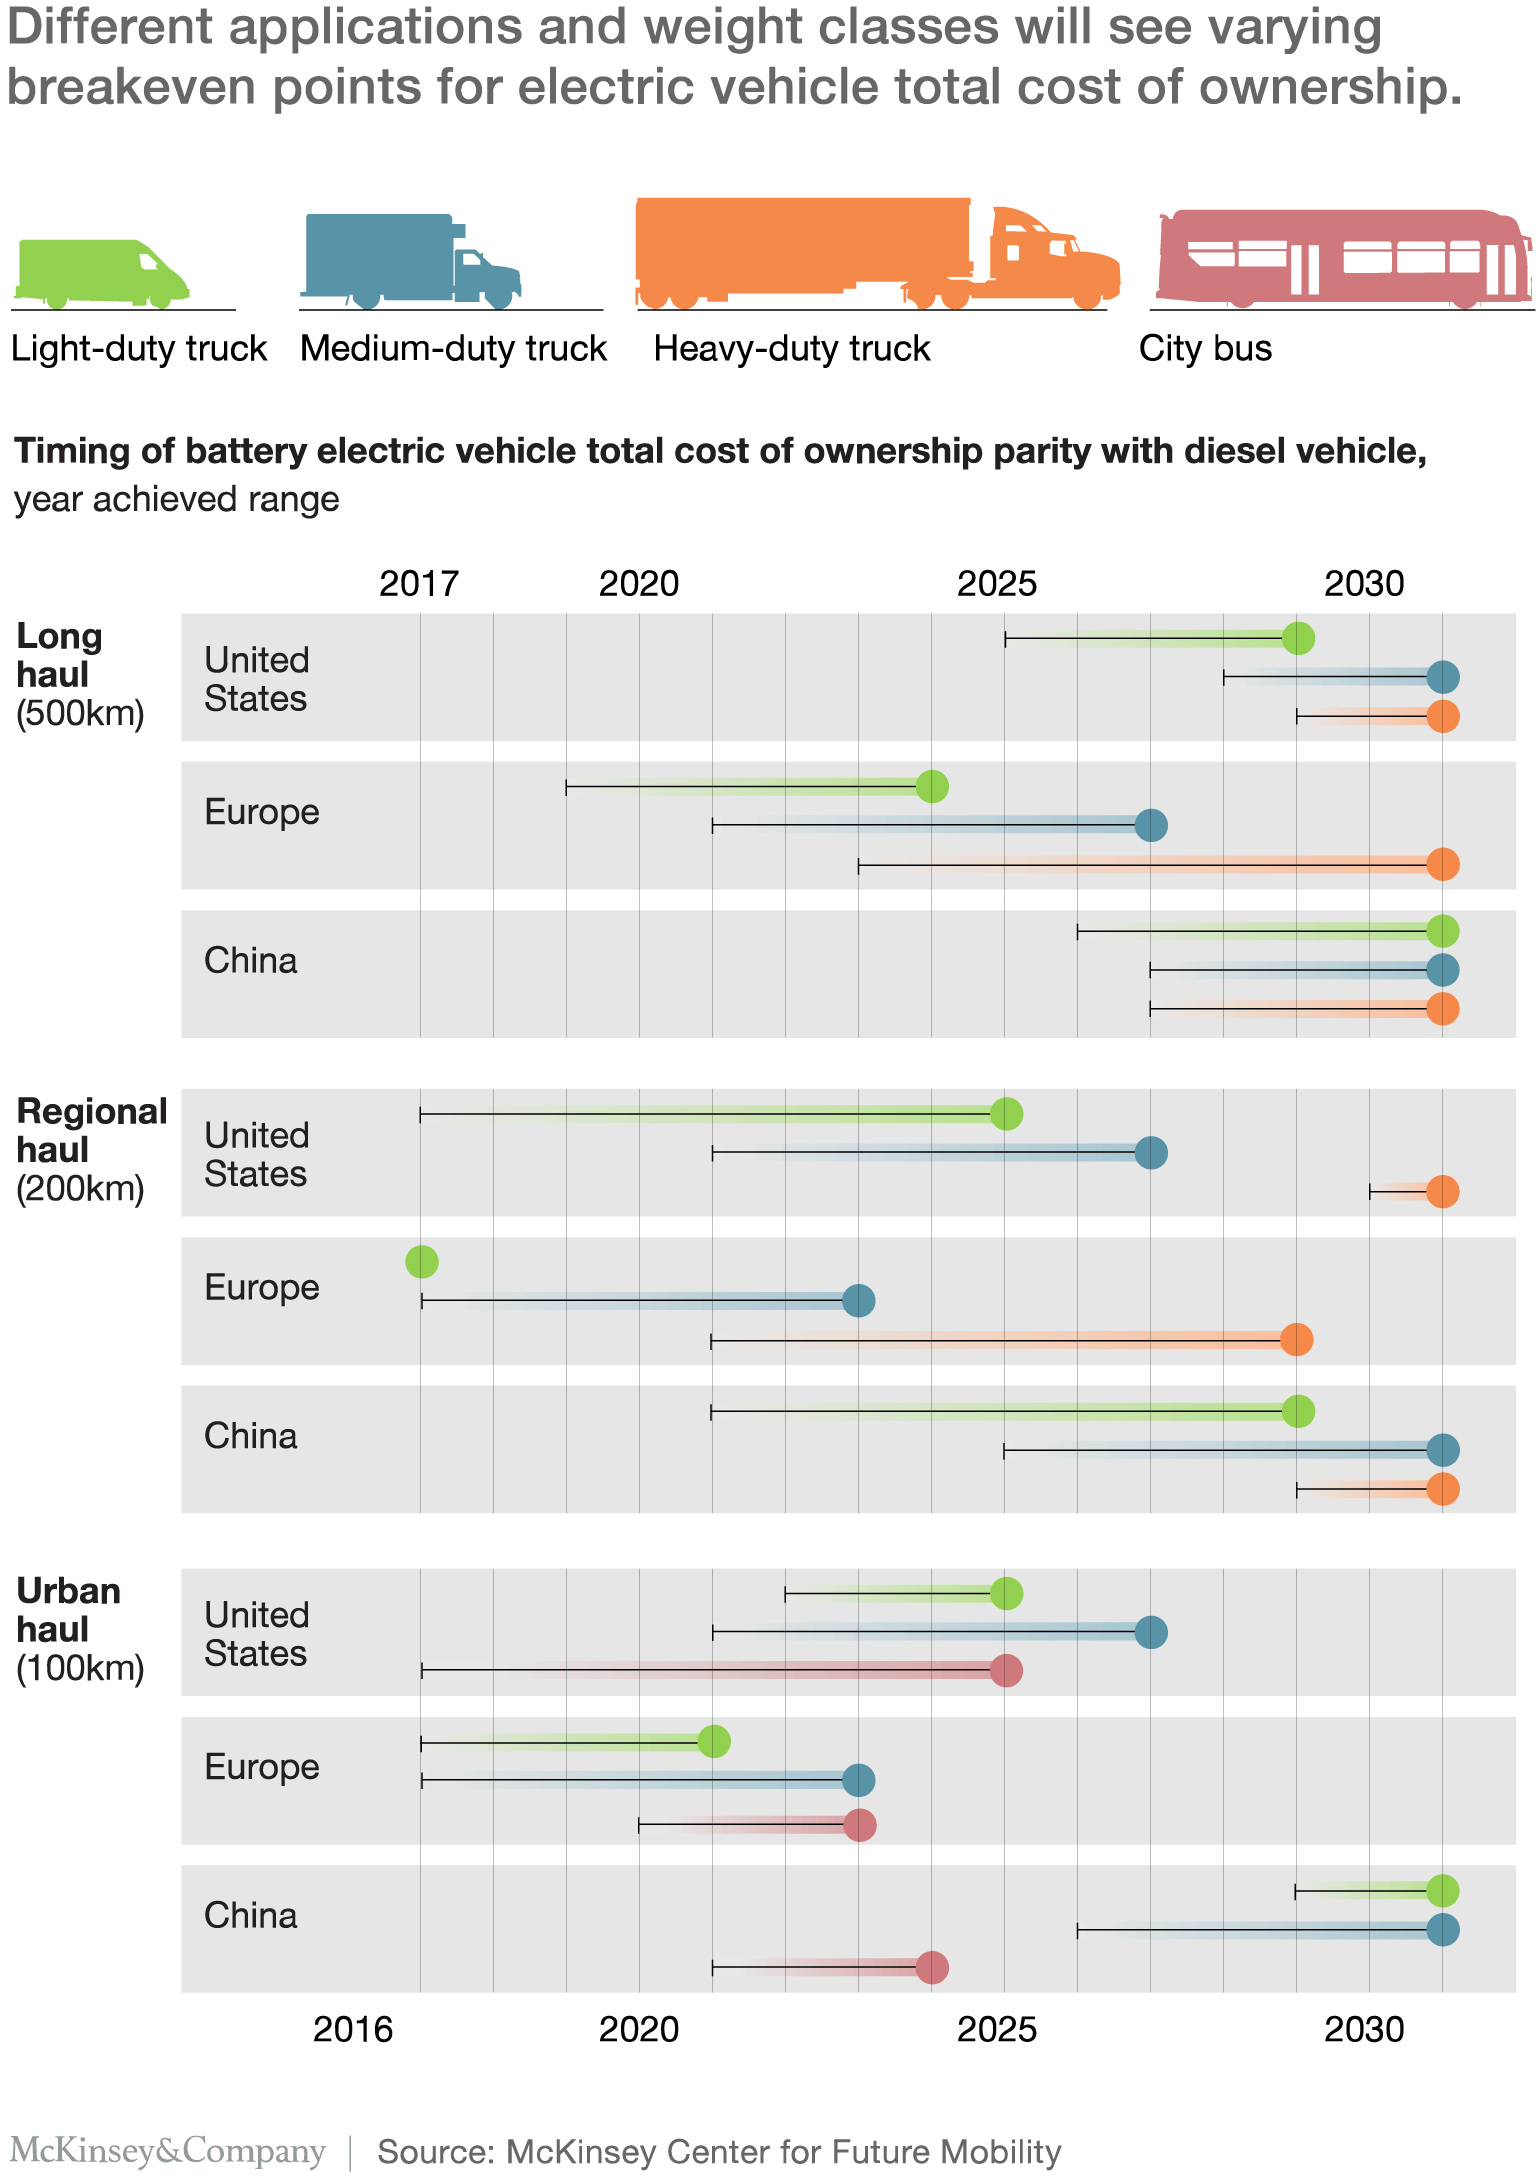 timeline for electric trucks (by weight class and miles traveled) reaching total-cost-of-ownership parity with diesel vehicles in Europe, US, and China through 2030